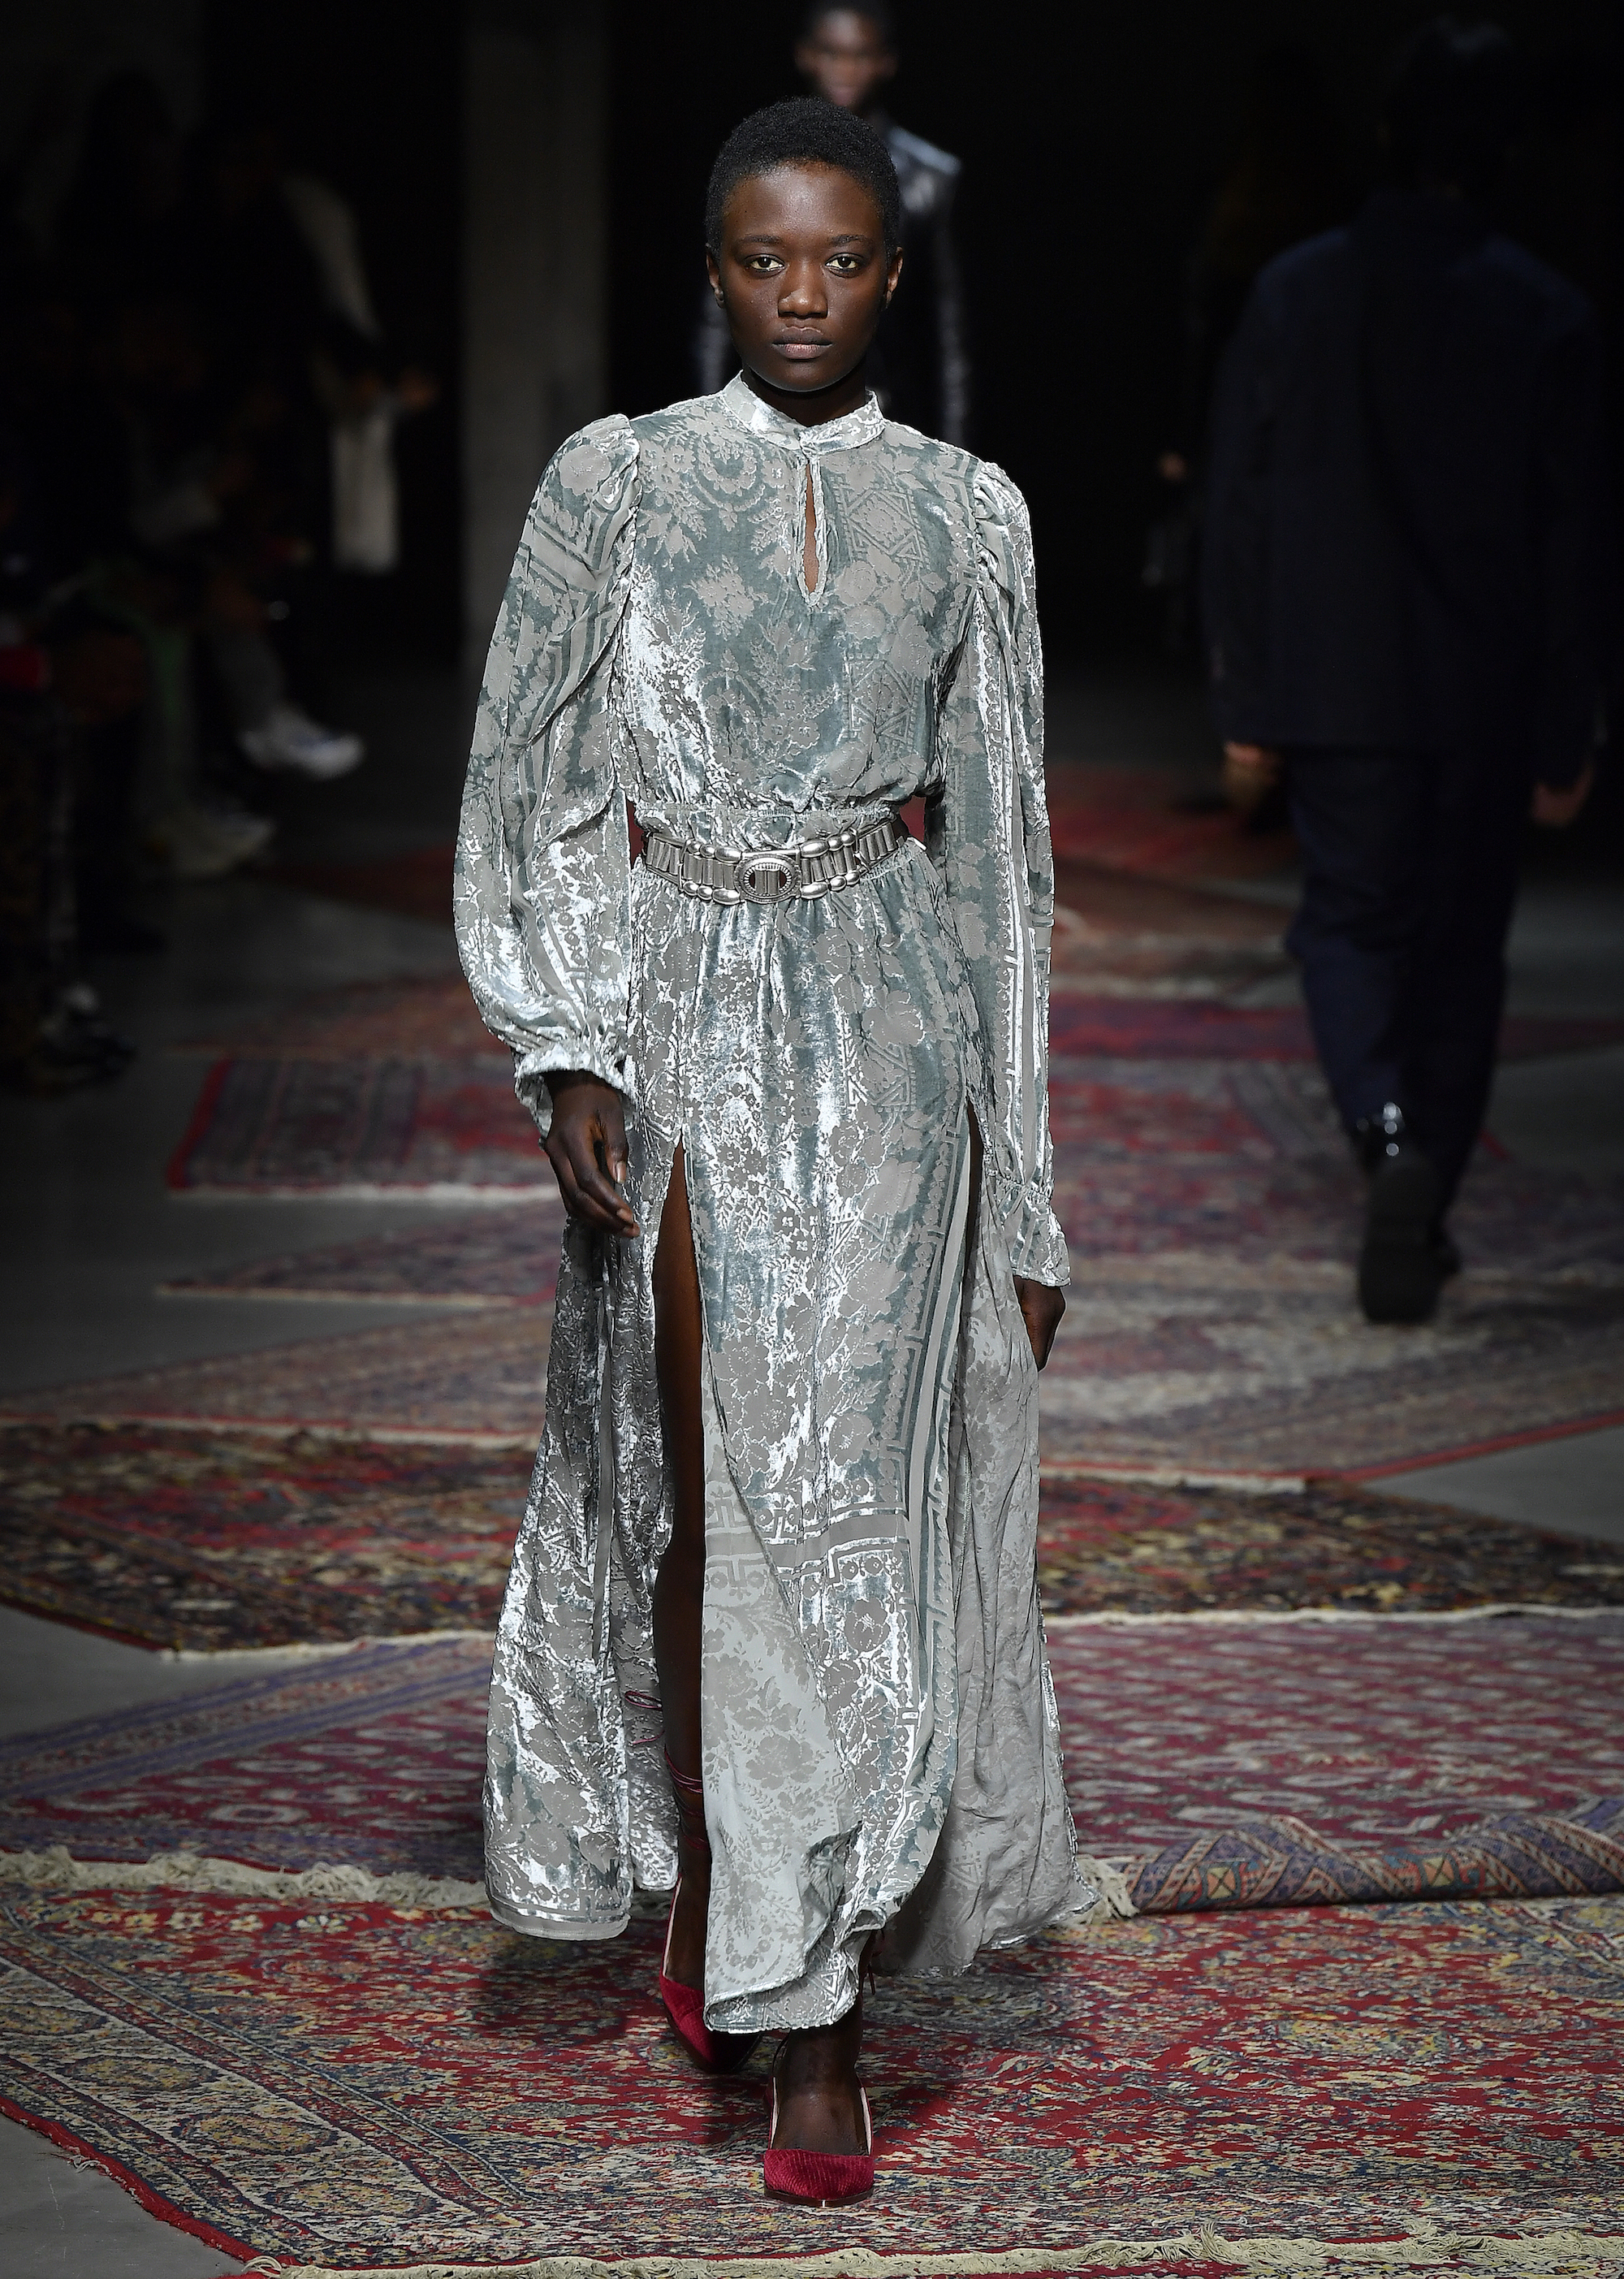 A model walks the runway during Les Benjamins Menswear Fall/Winter 2020-2021 show as part of Paris Fashion Week on January 17, 2020 in Paris, France - velvet dress